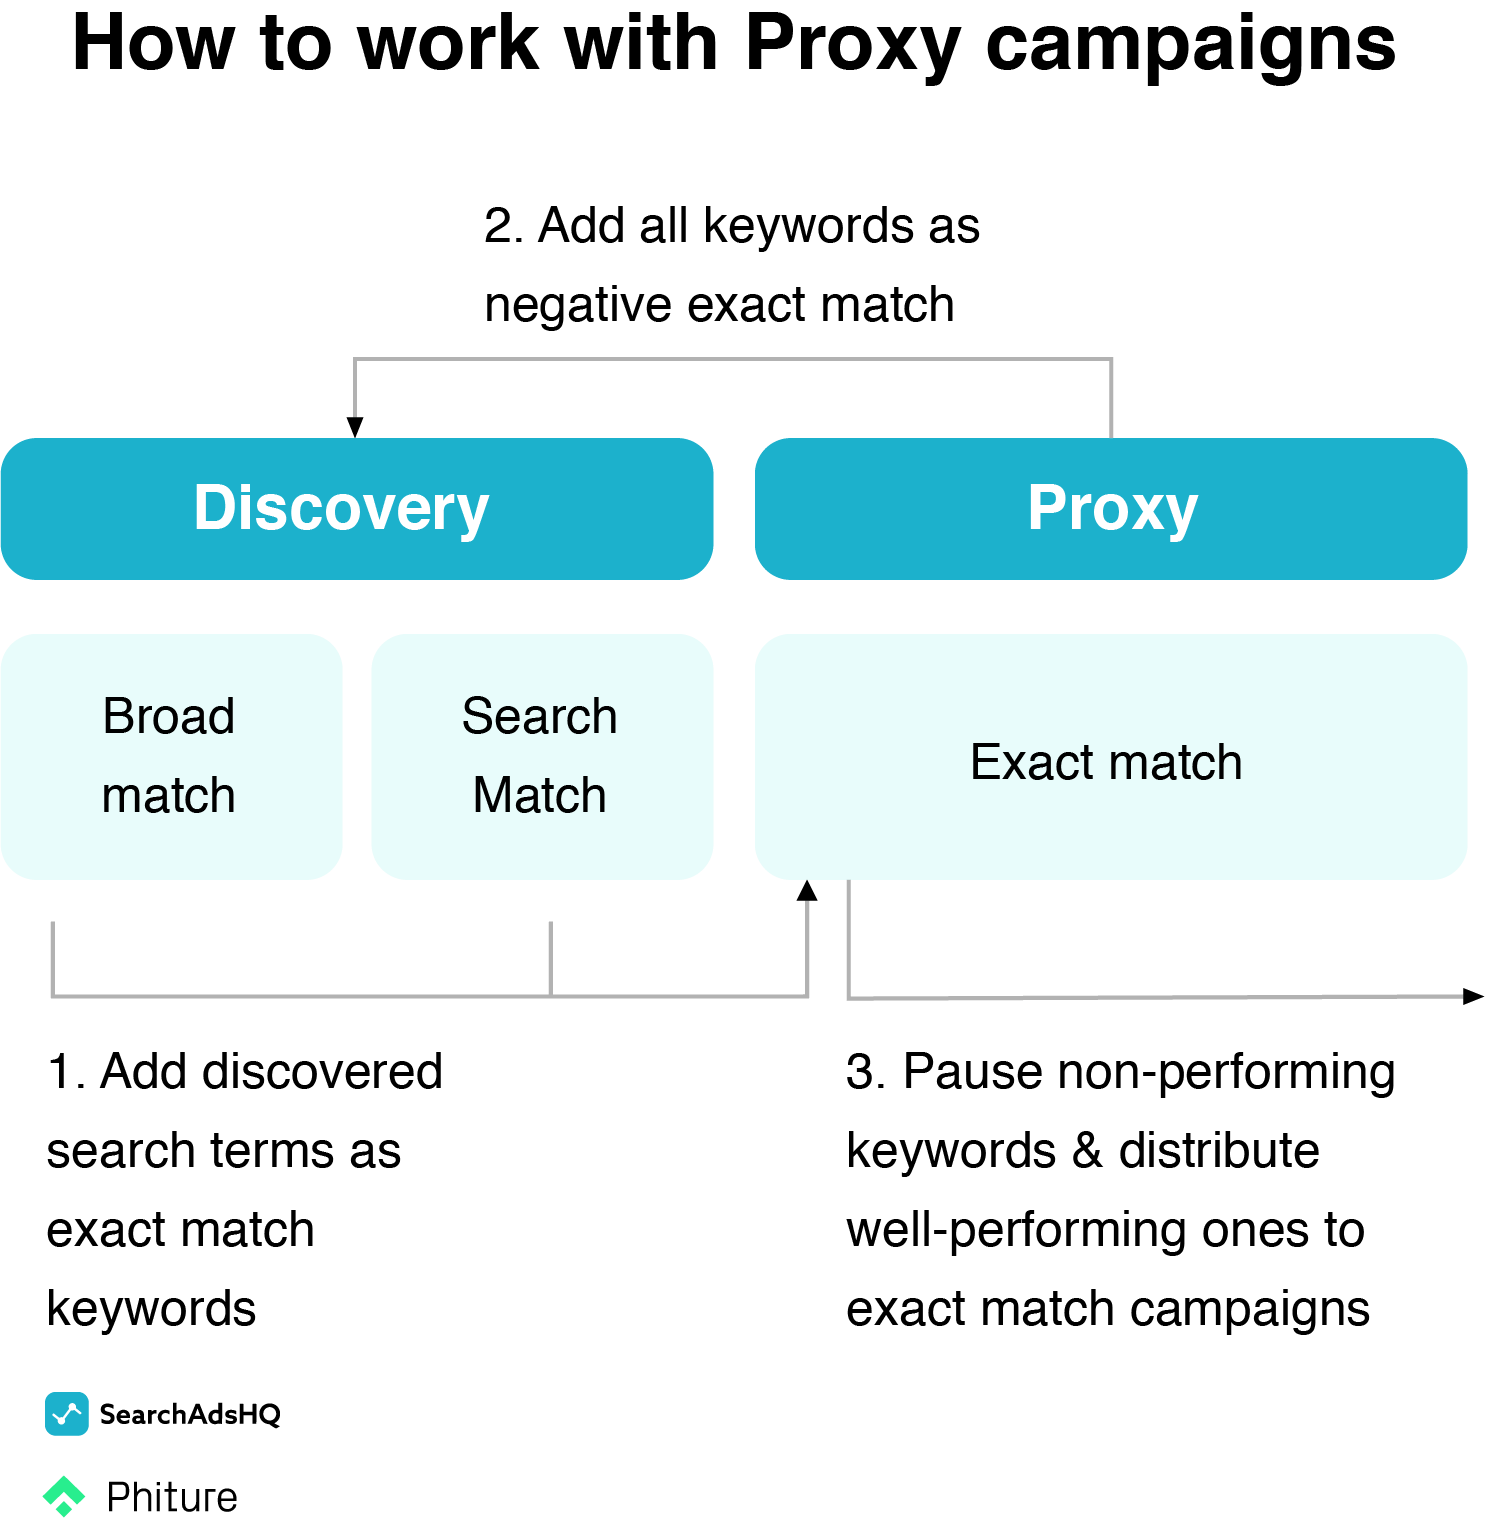 Apple Search Ads account structure - proxy workflow